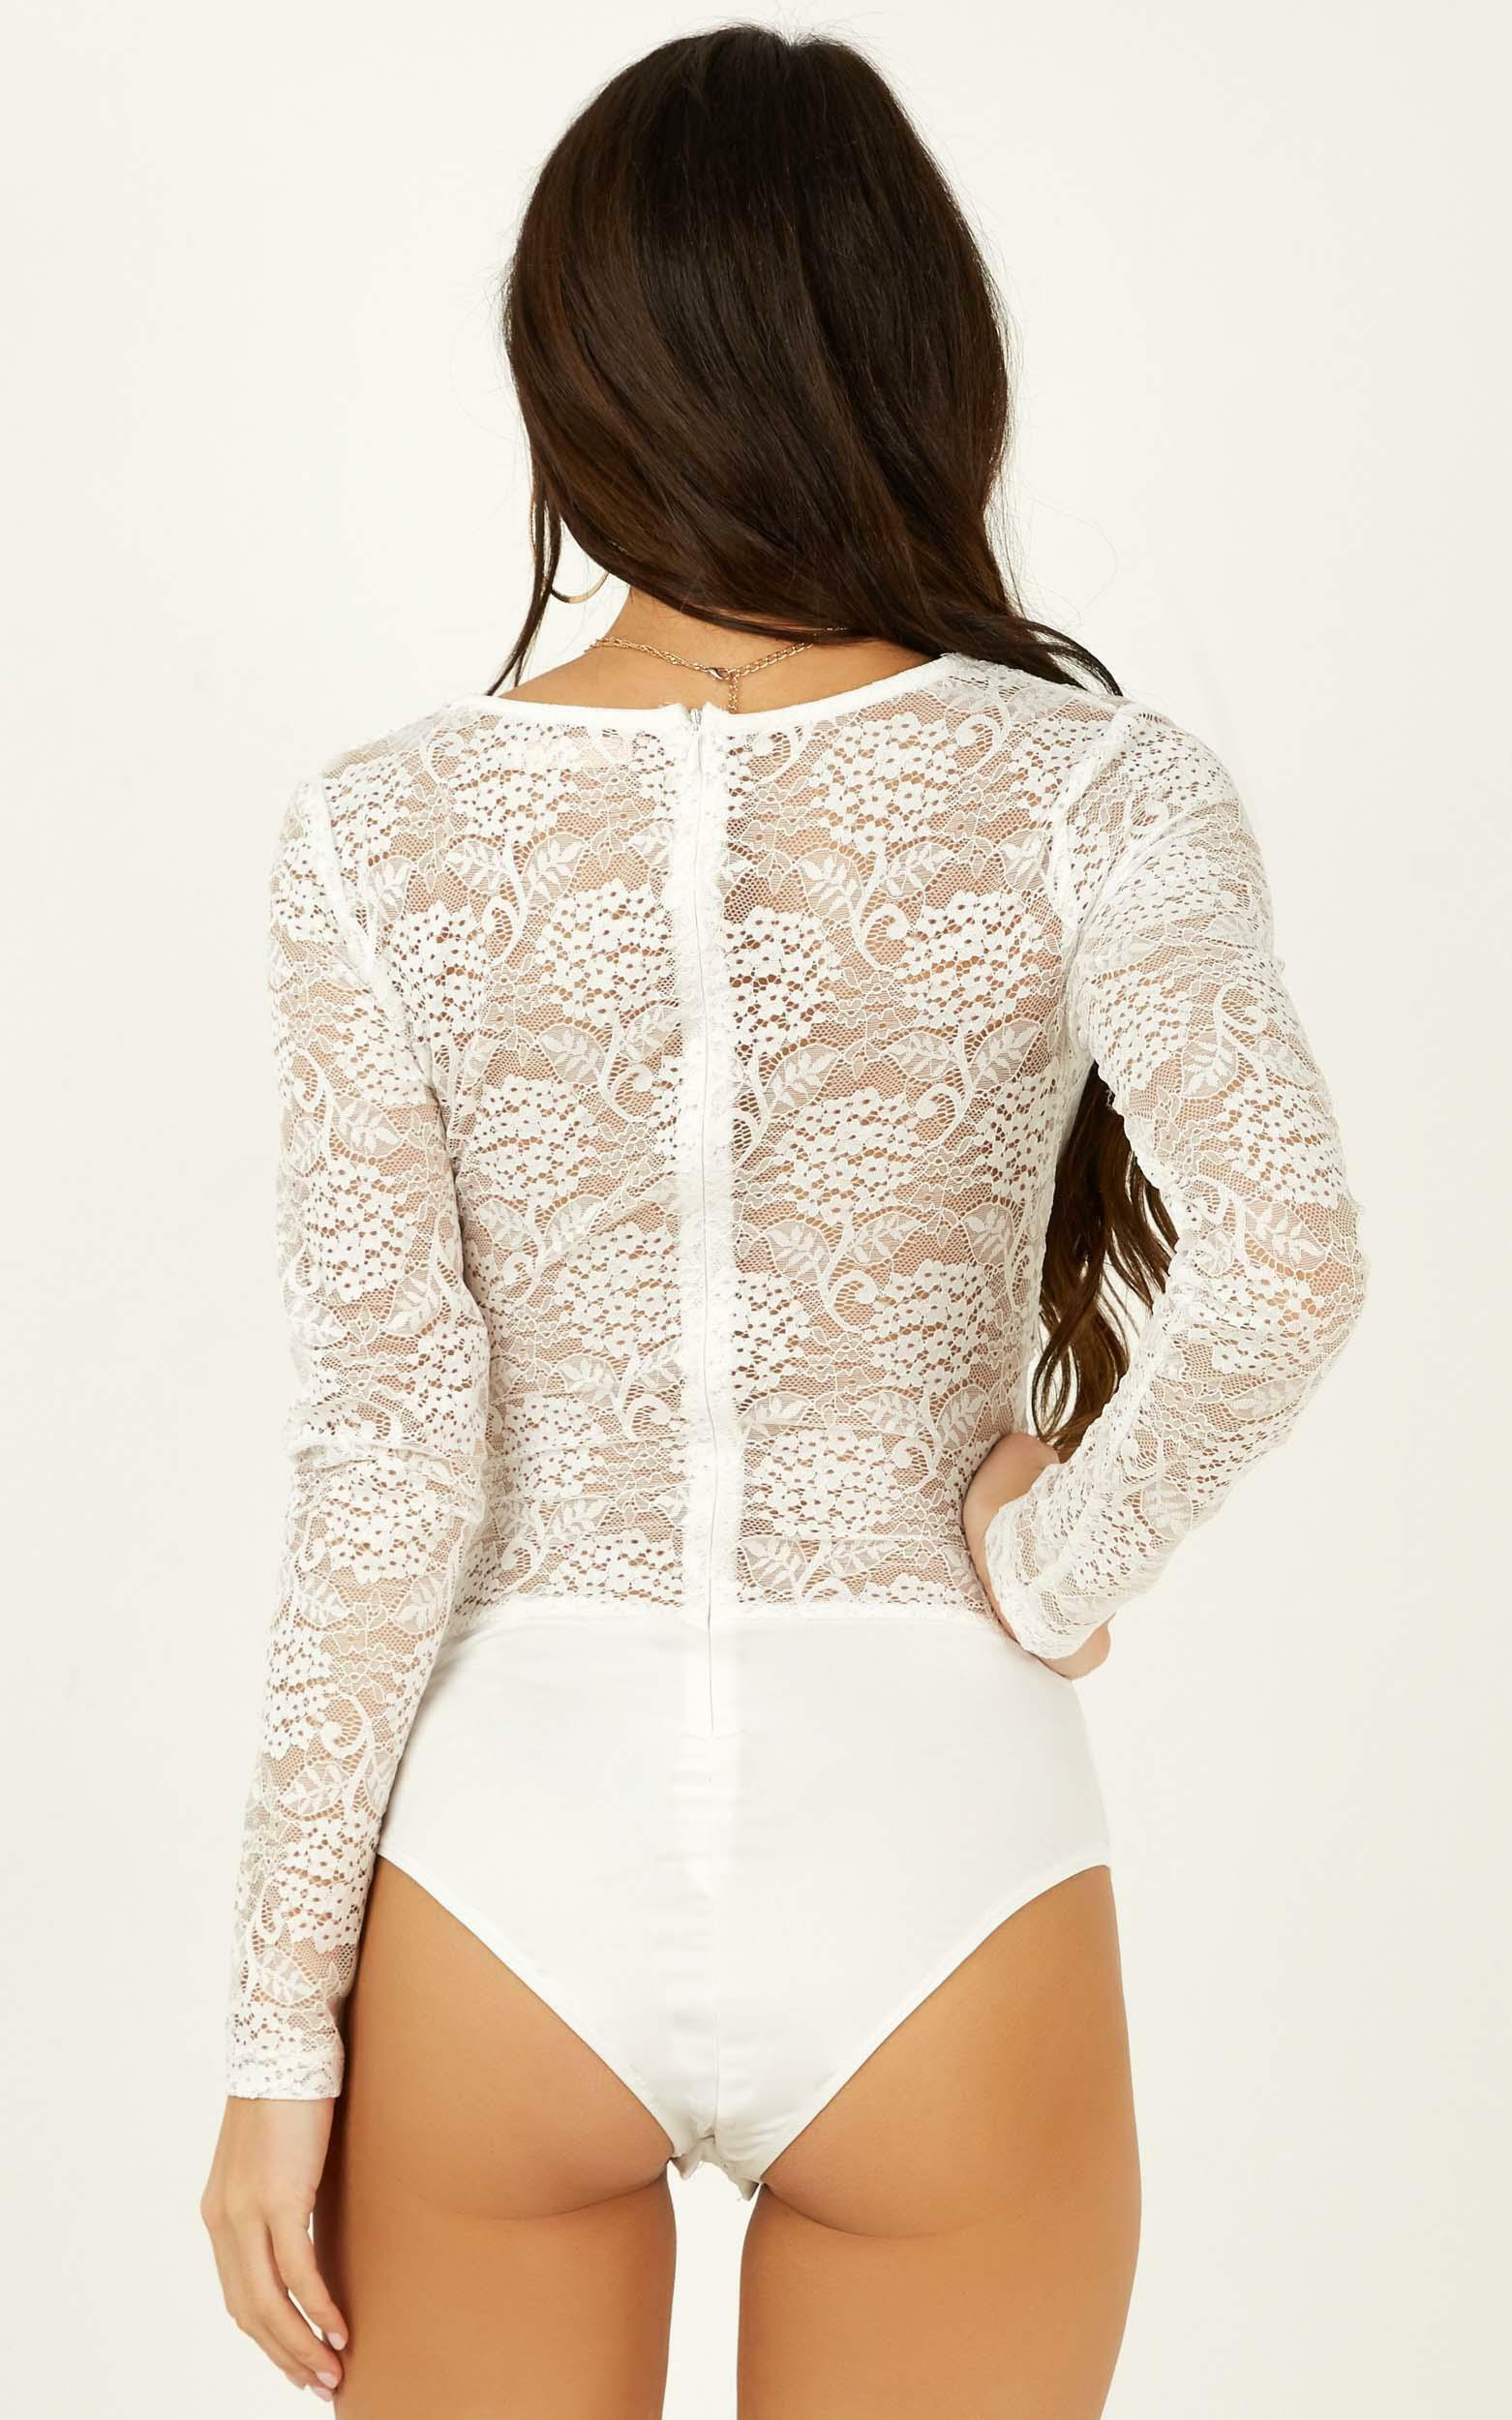 My Inspiration bodysuit in white lace - 12 (L), White, hi-res image number null